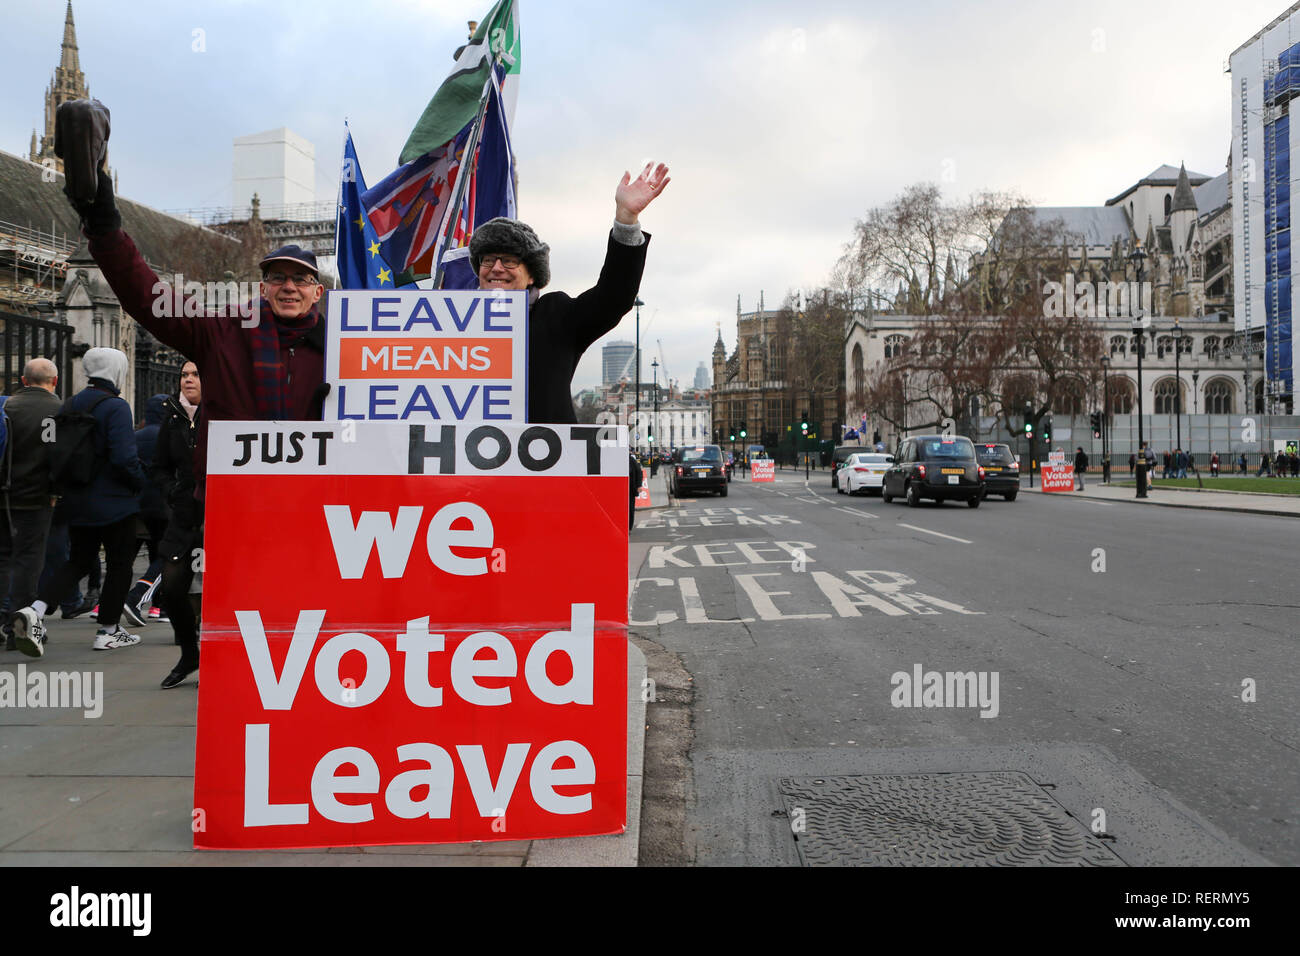 Westminster, London, UK. 23rd Jan, 2019. Daily protest outside Parliament for and against Brexit. Credit: Penelope Barritt/Alamy Live News Stock Photo